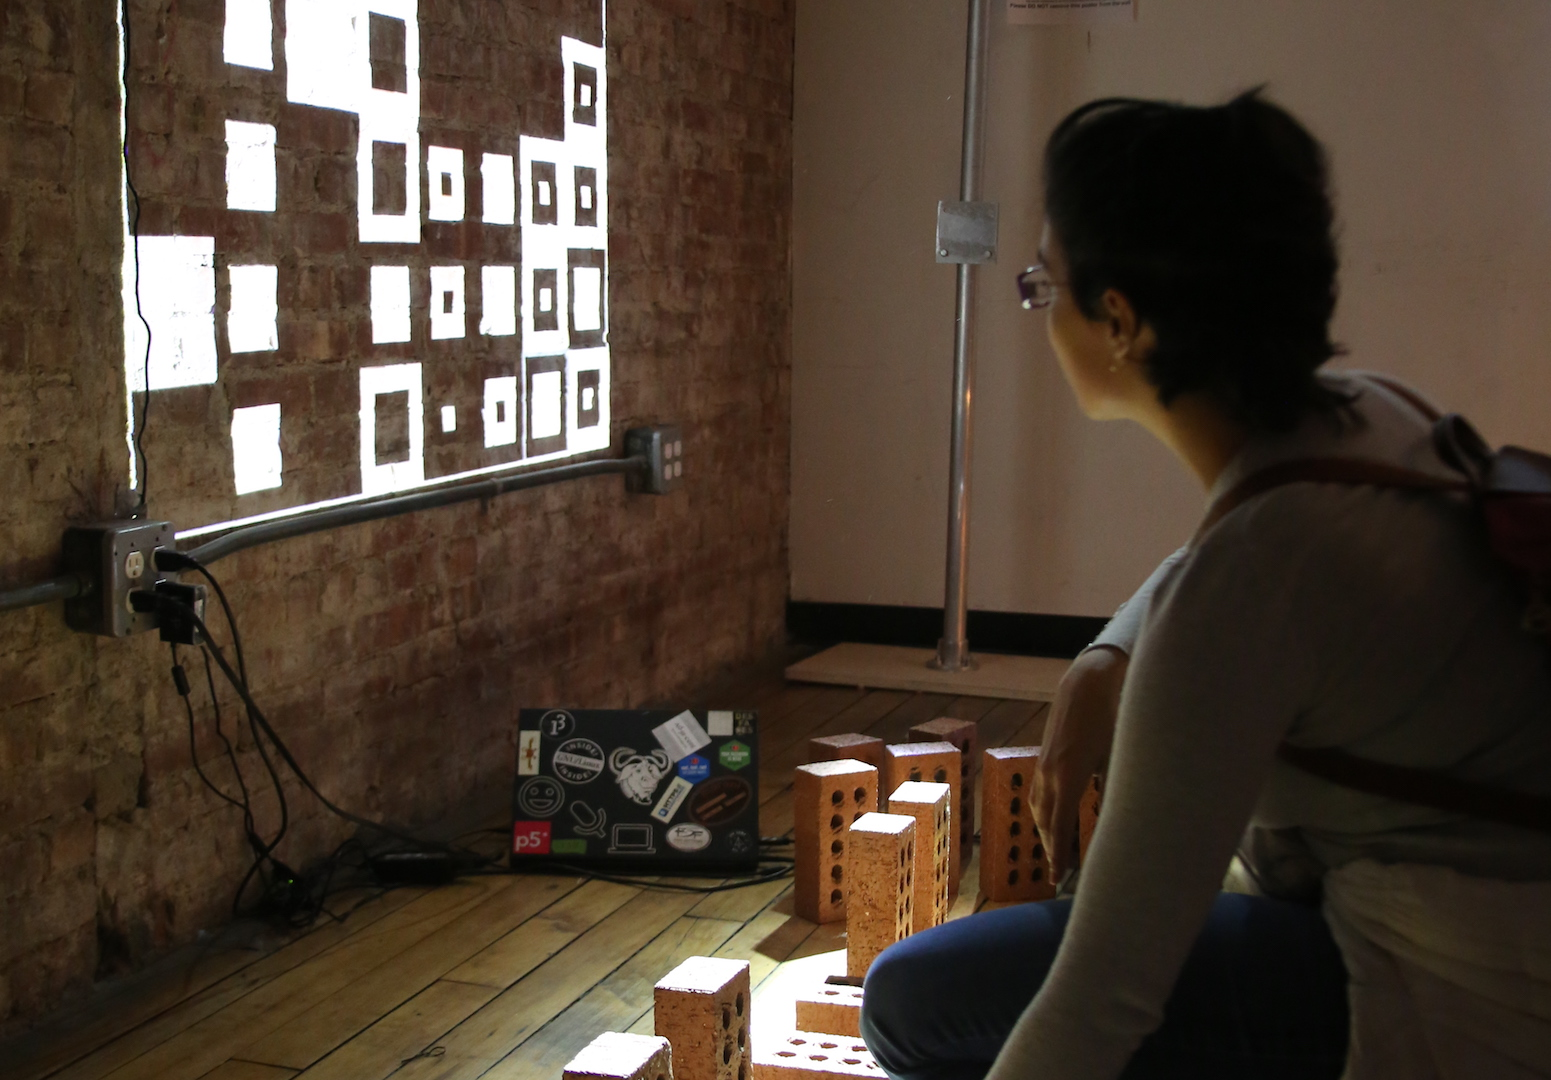 a person interacting with bricks while looking at black and white squares projected on the wall